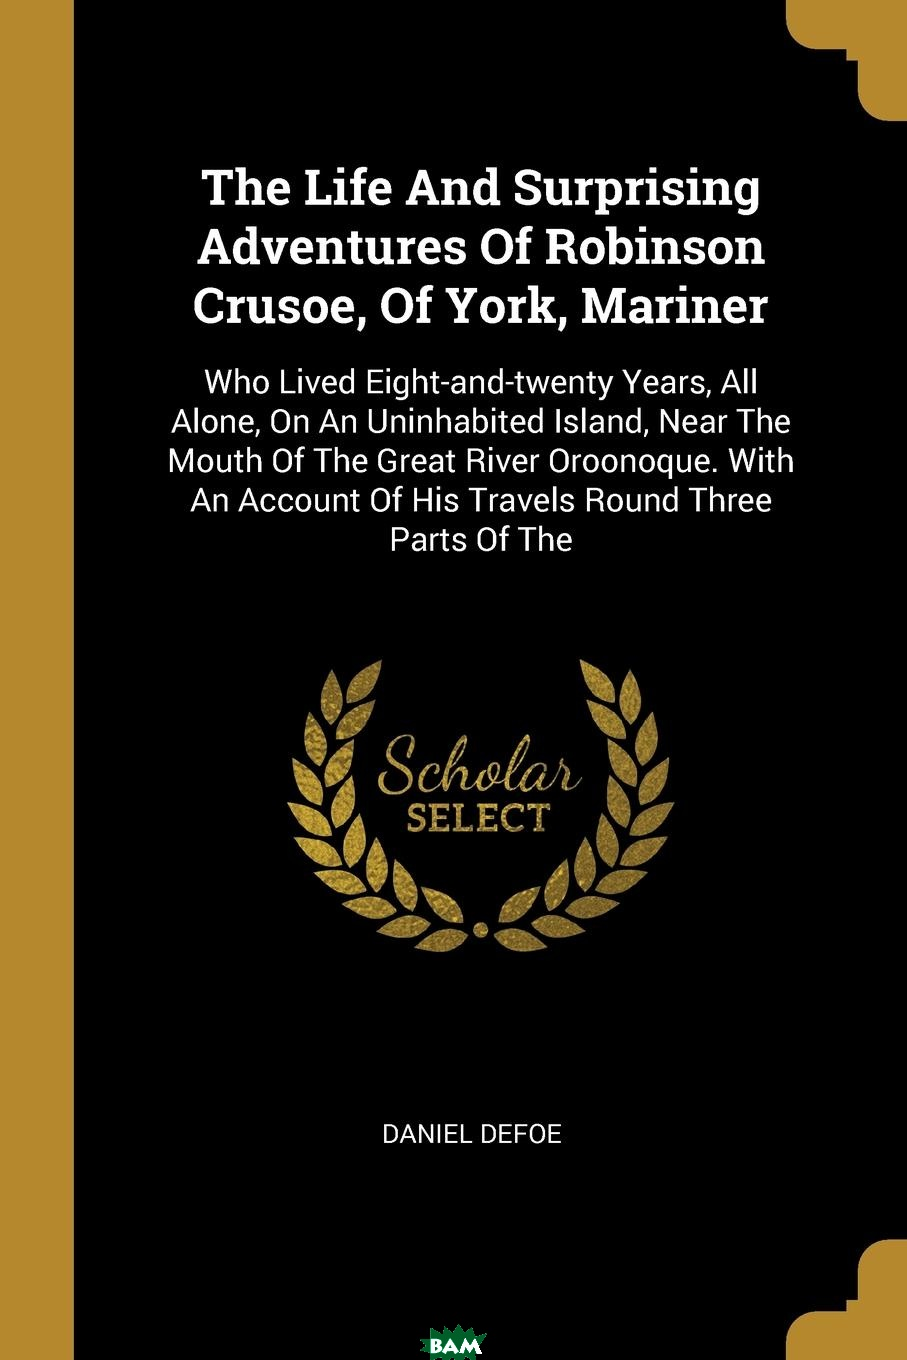 Купить The Life And Surprising Adventures Of Robinson Crusoe, Of York, Mariner. Who Lived Eight-and-twenty Years, All Alone, On An Uninhabited Island, Near The Mouth Of The Great River Oroonoque. With An Ac, Daniel Defoe, 9781011105915